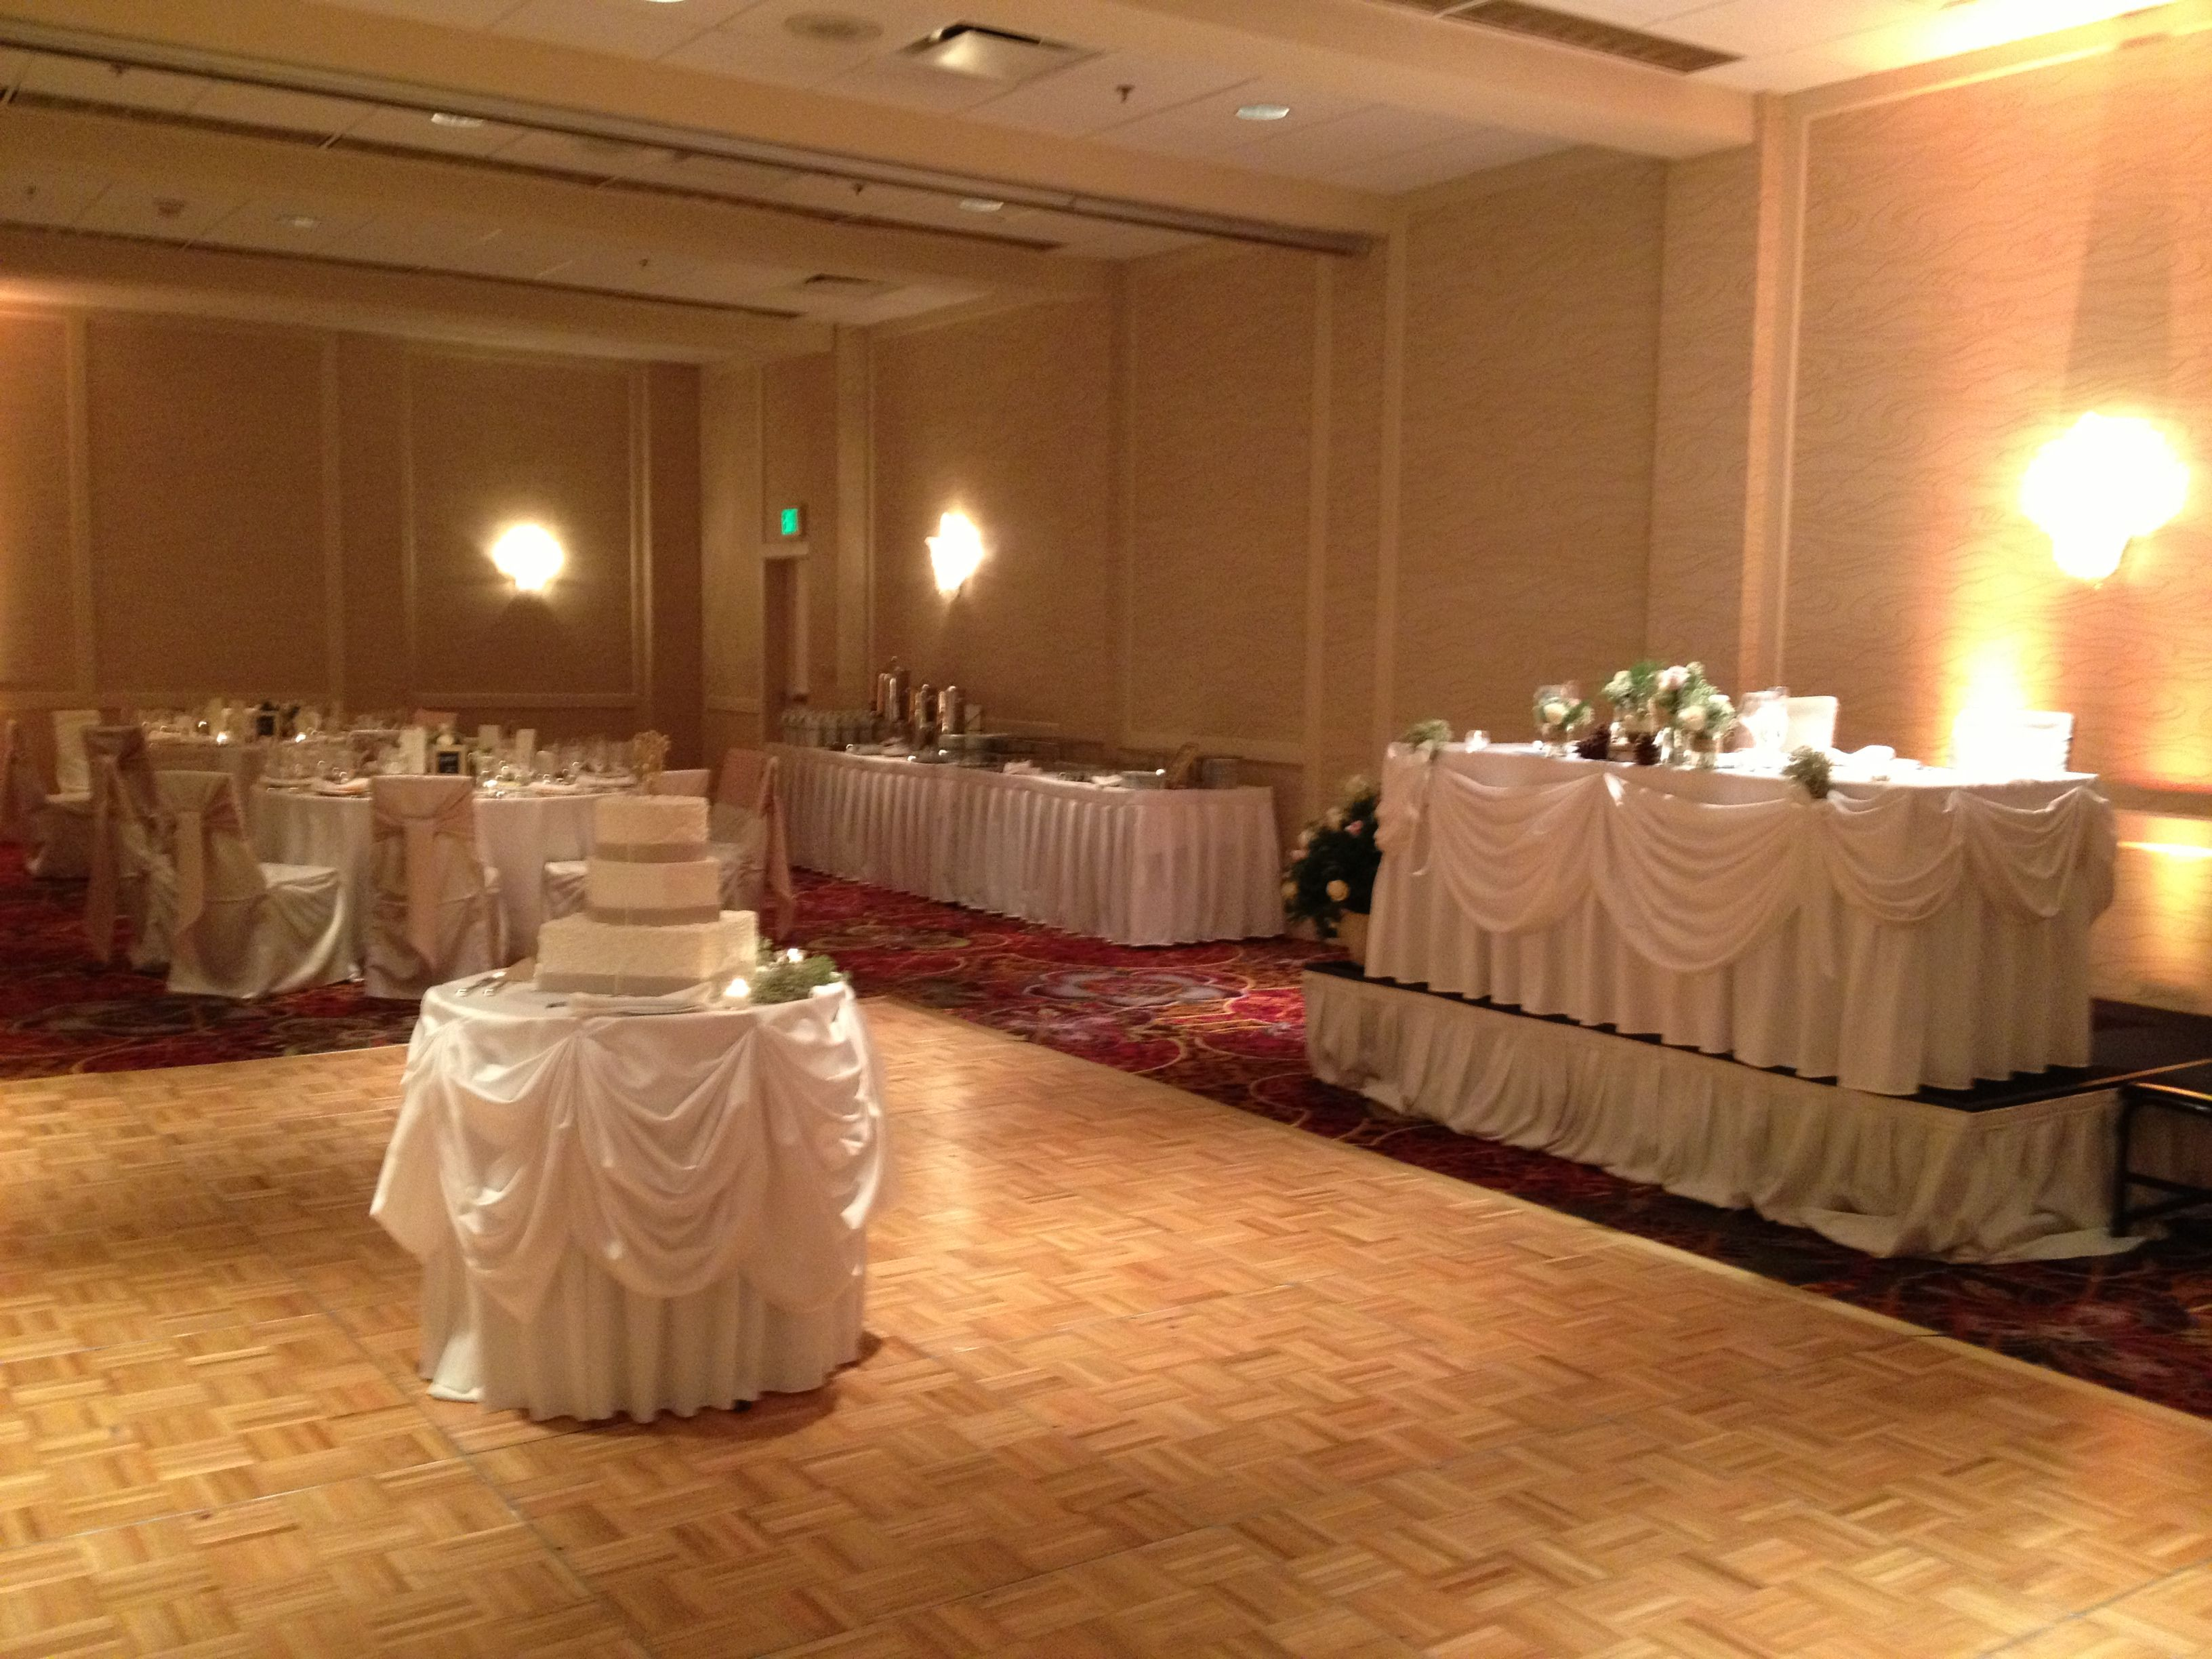 A Romantic Glow In The Lincolnshire Marriott Resorts Great Lakes Junior Ballroom Weddings